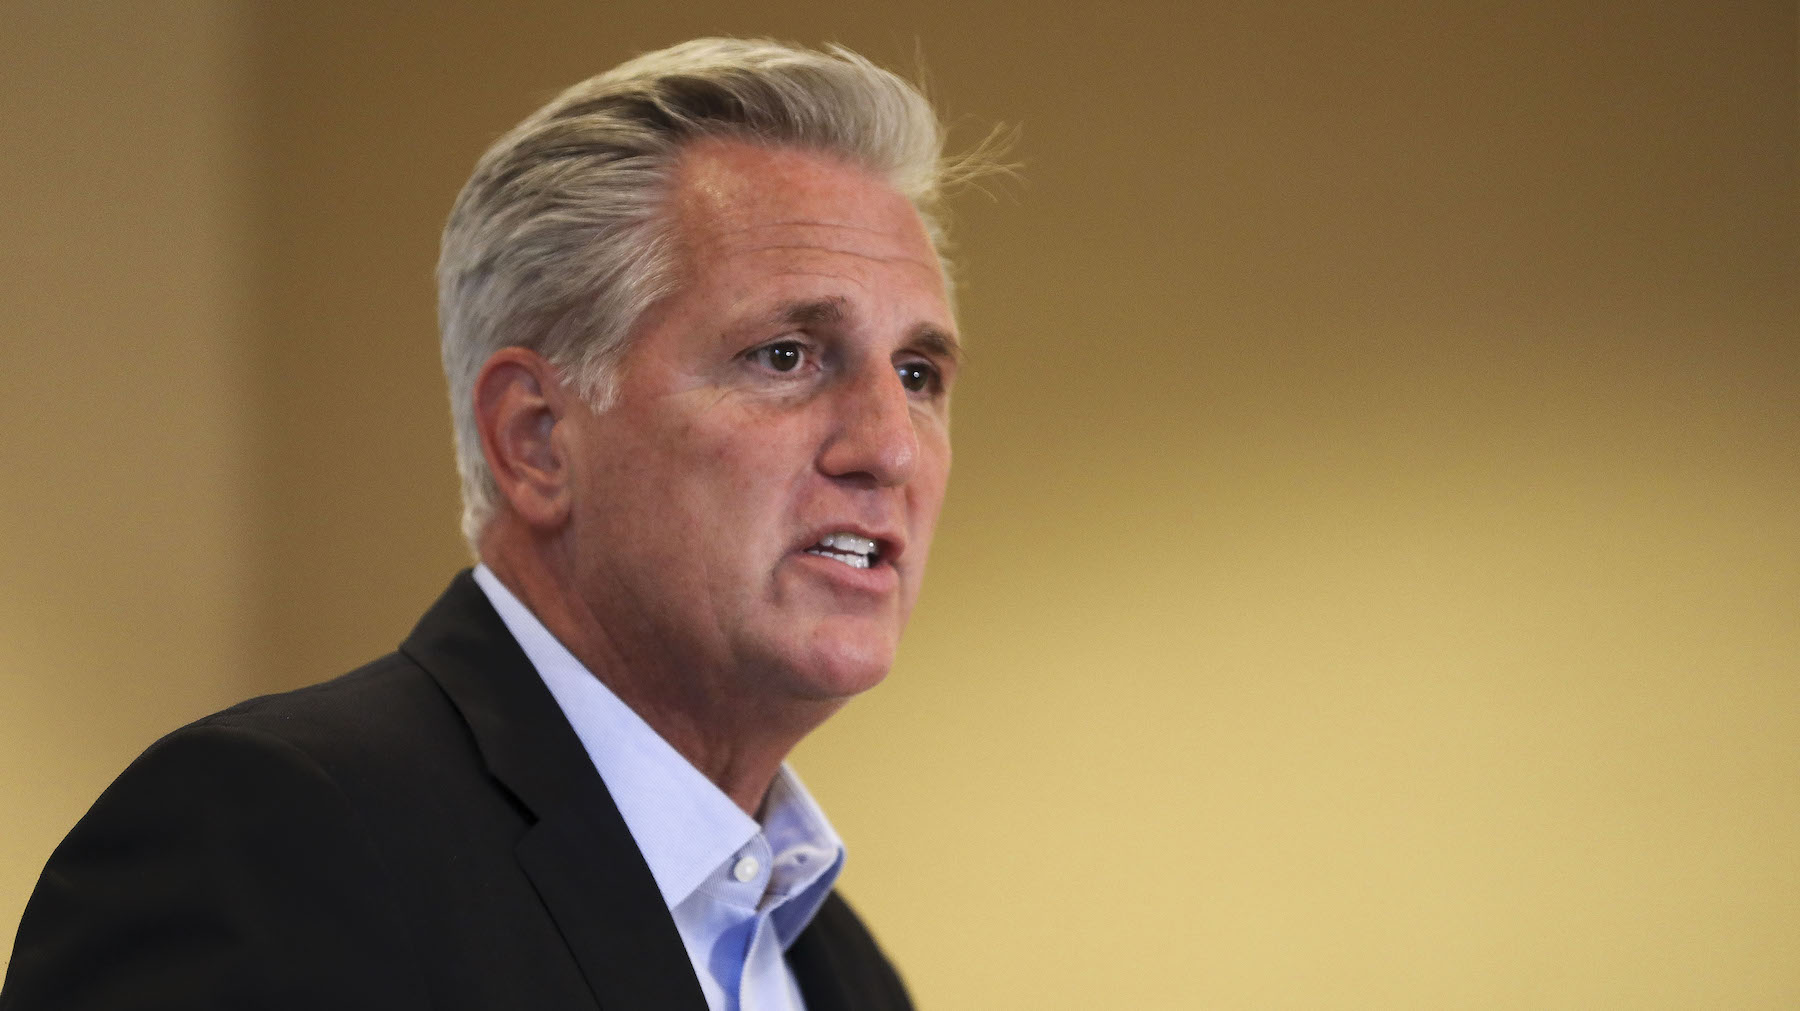 Kevin McCarthy Says House Democrat Told Him They Want to Switch Parties